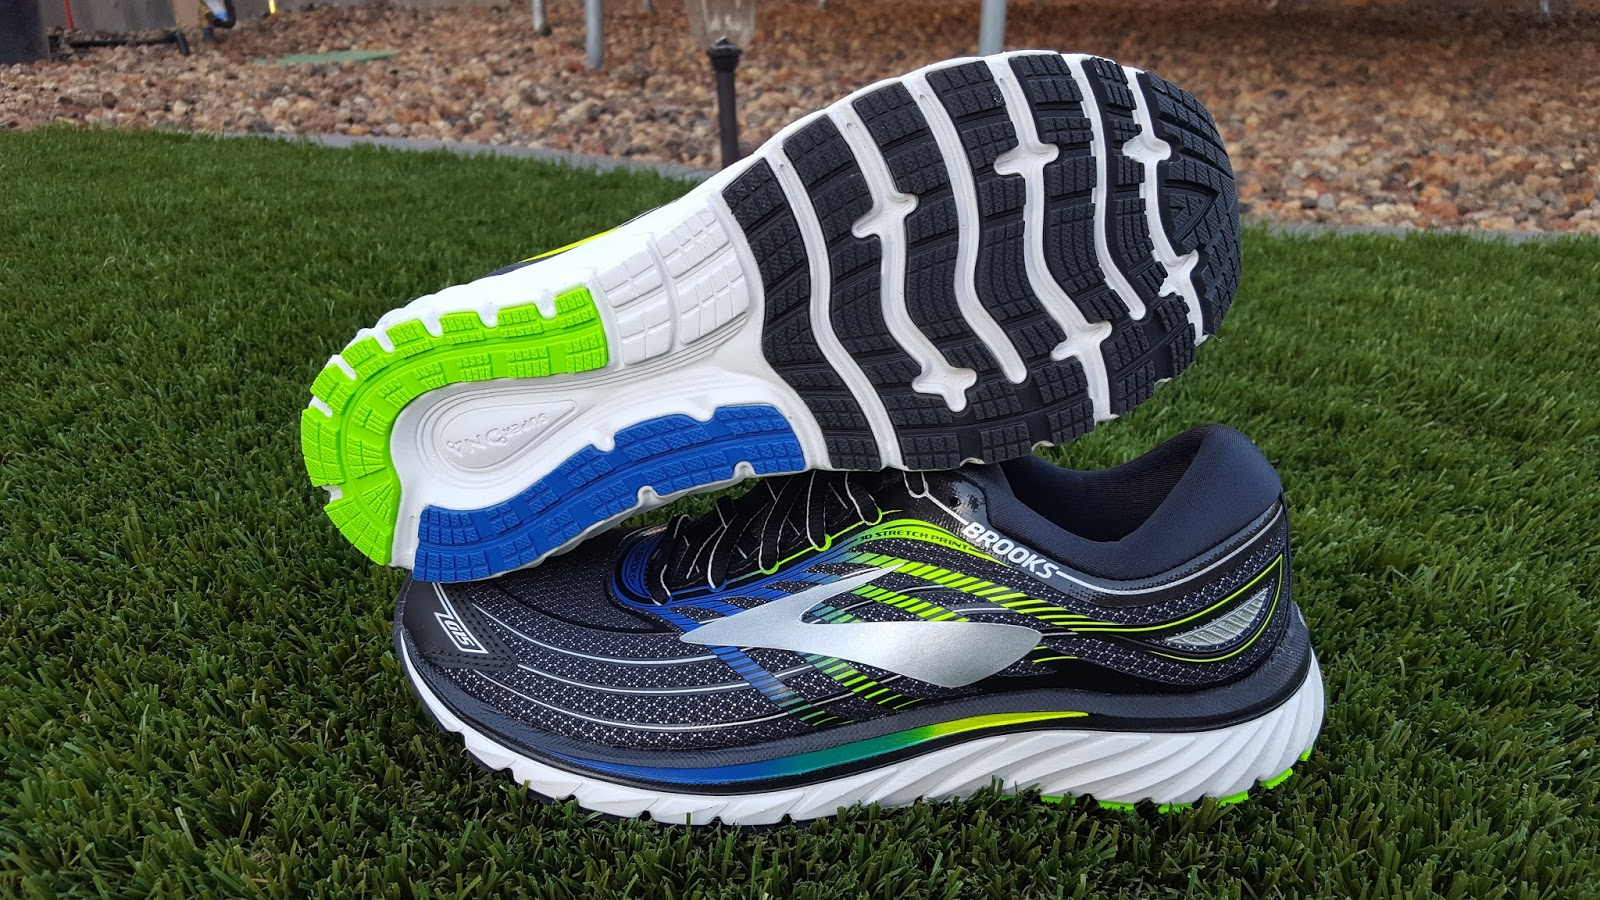 153e9d77a07 Running Without Injuries  Brooks Glycerin 15 Review